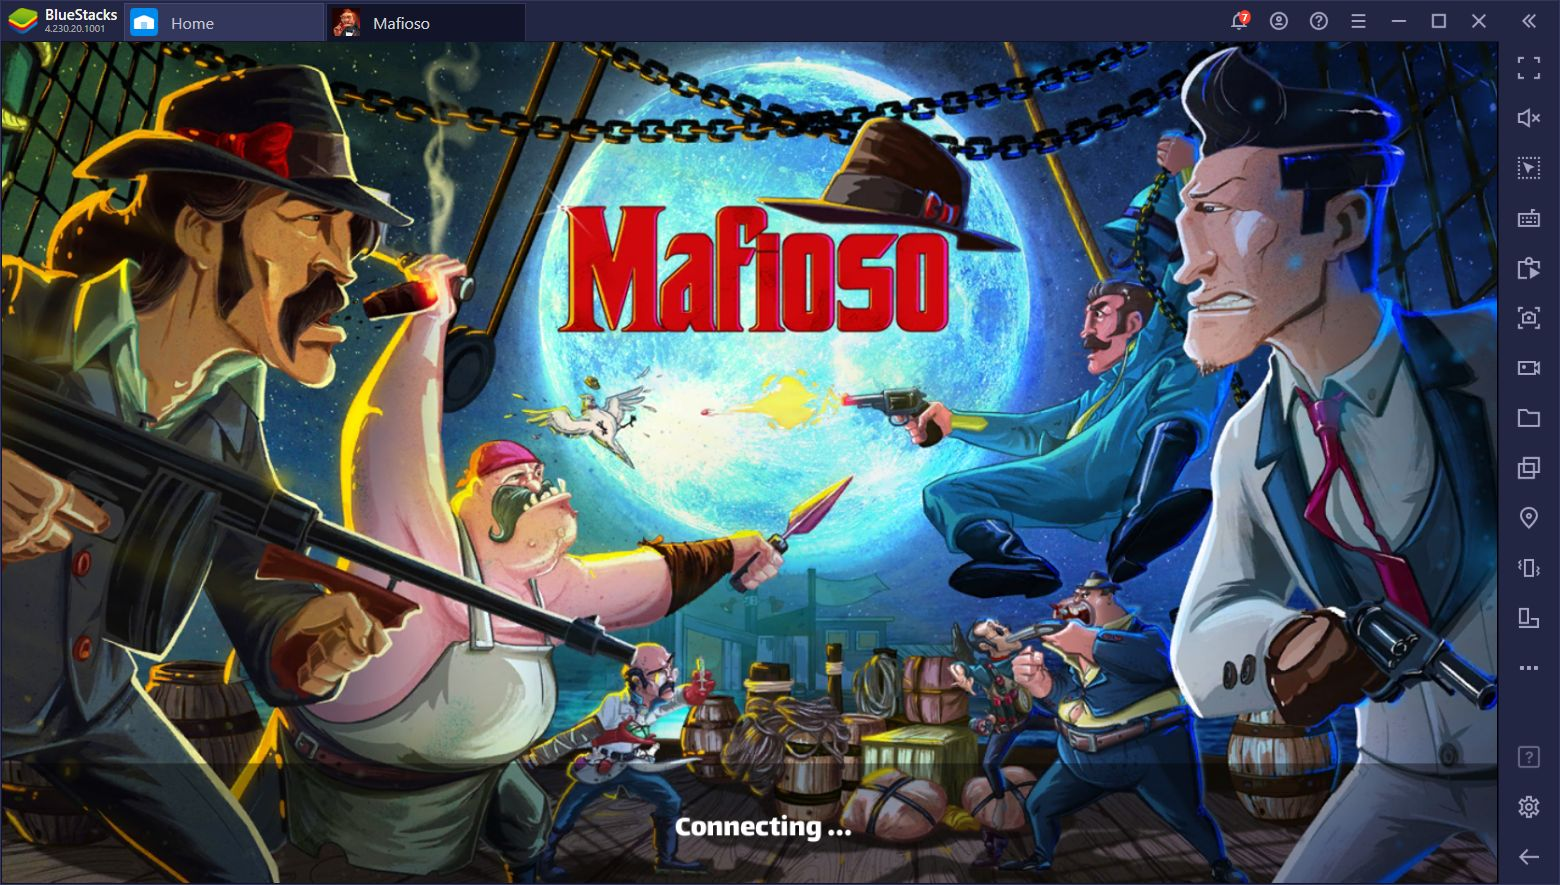 Create the Strongest Family in Mafioso: Mafia & clan wars in Gangster Paradise on PC with BlueStacks